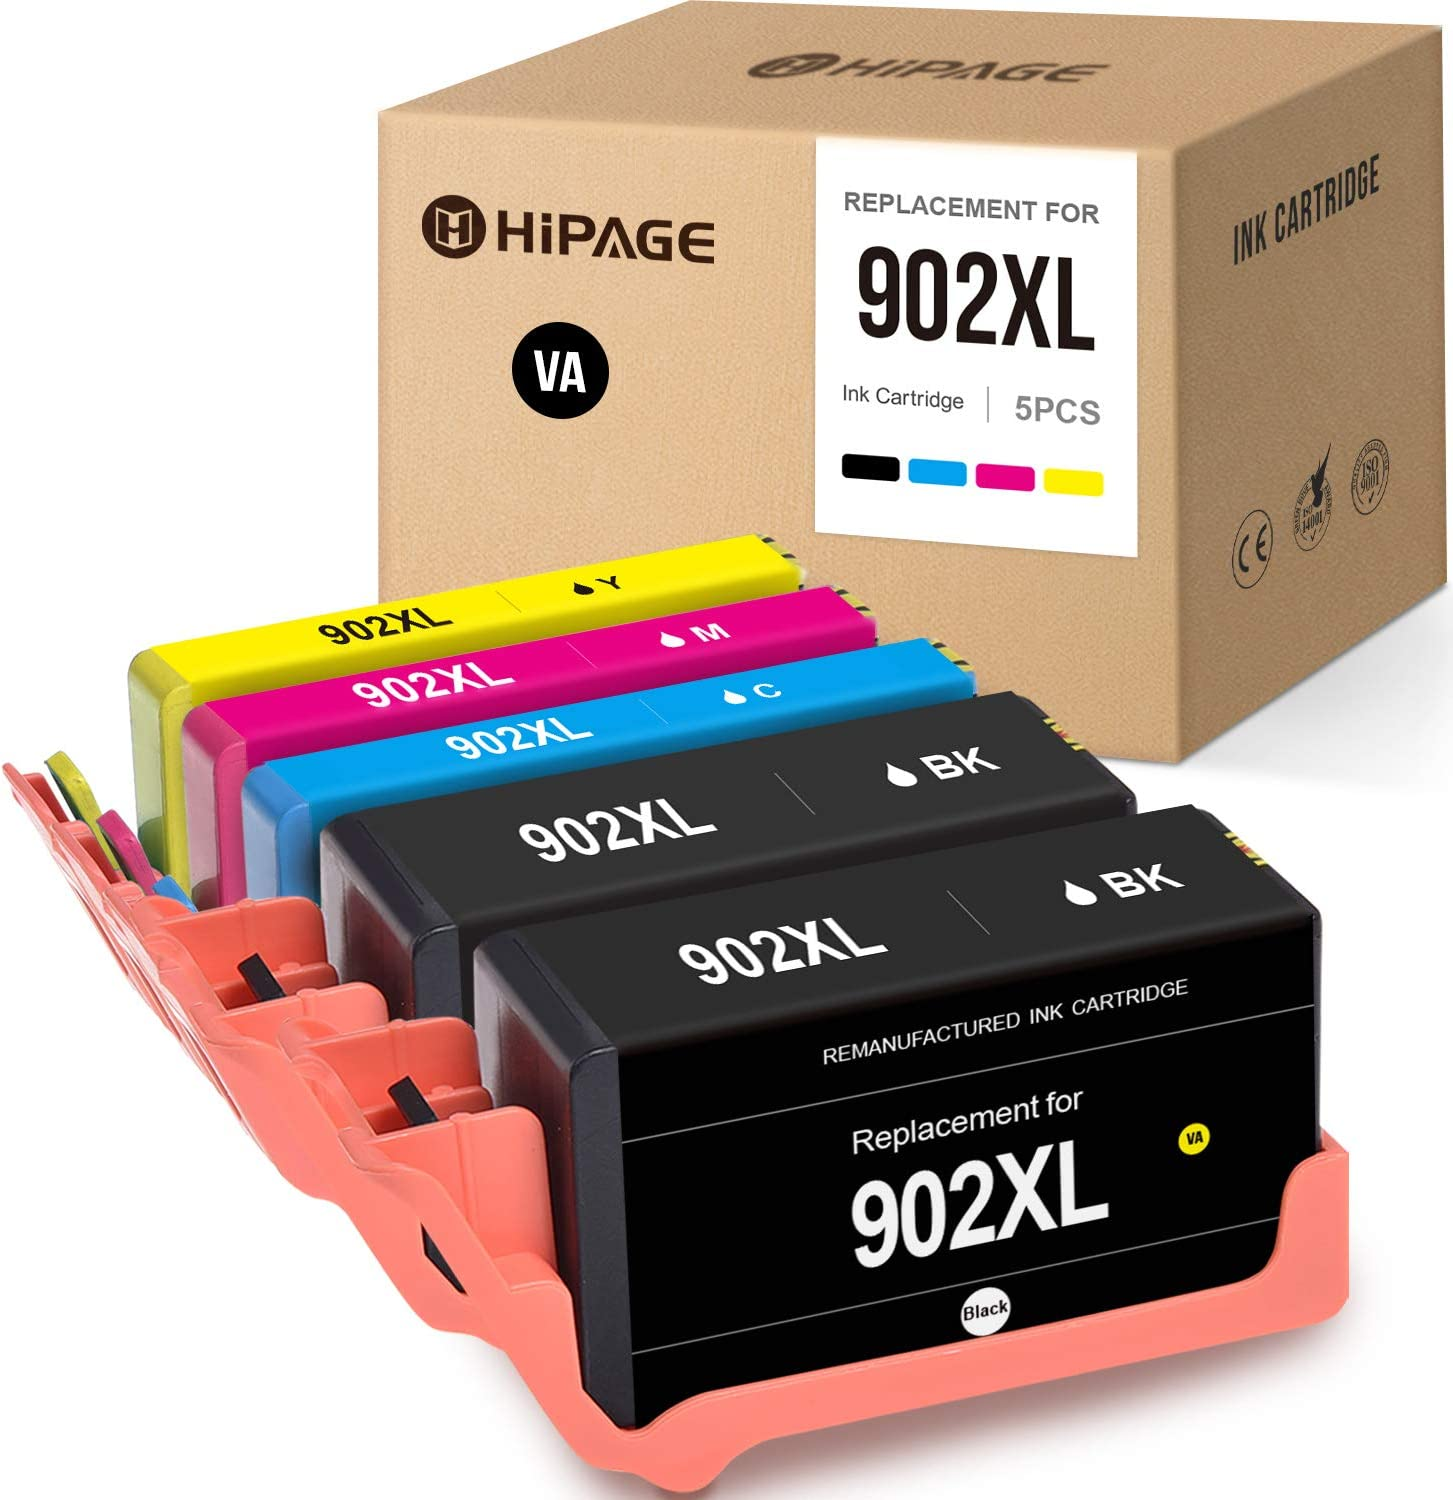 HIPAGE Remanufactured Ink Cartridge Replacement for HP 902XL 902 XL Ink Cartridges Combo Pack (2 Black,1Cyan Magenta Yellow, 5-Pack)